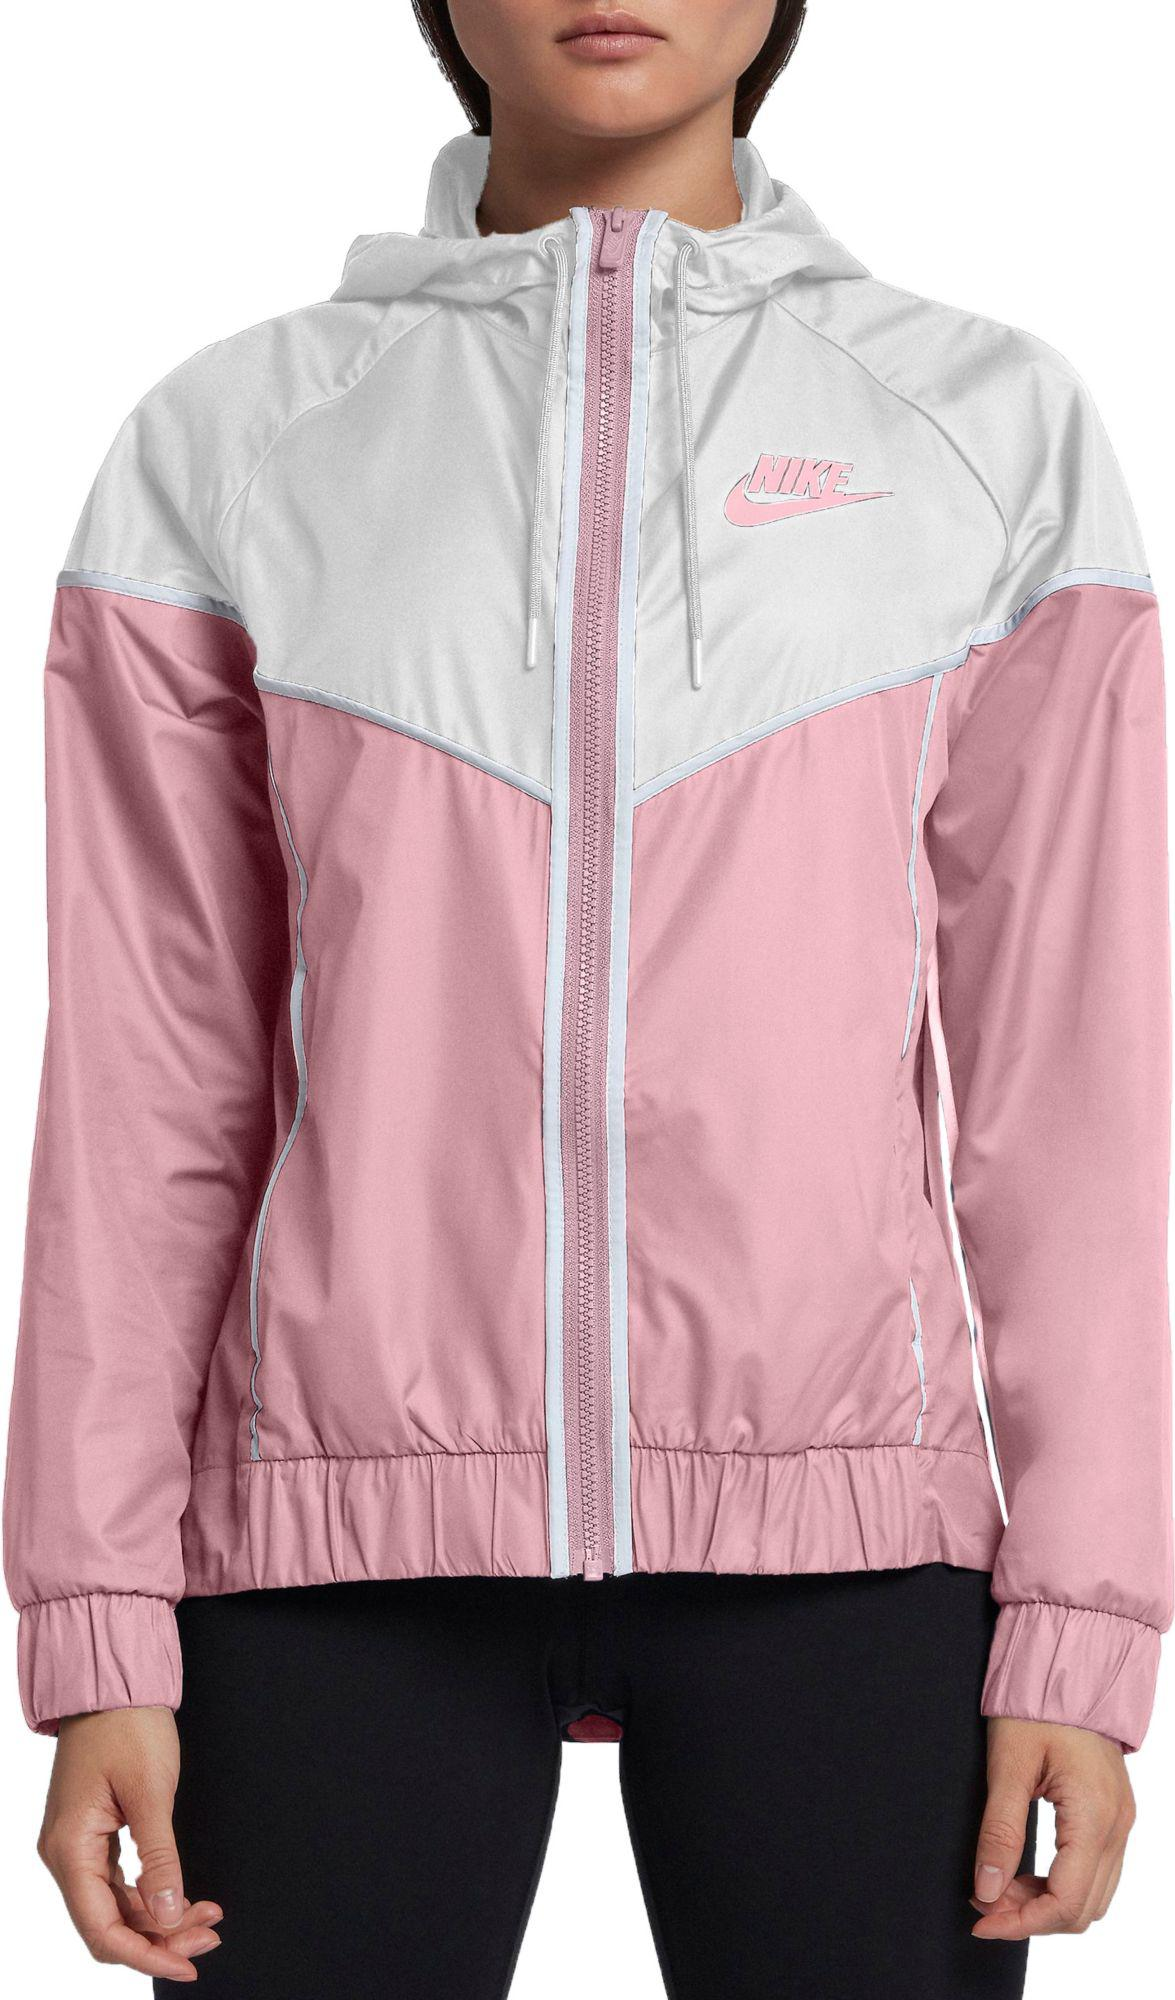 detailed look a0bc2 68e72 Nike. Womens Pink Sportswear Windrunner Jacket